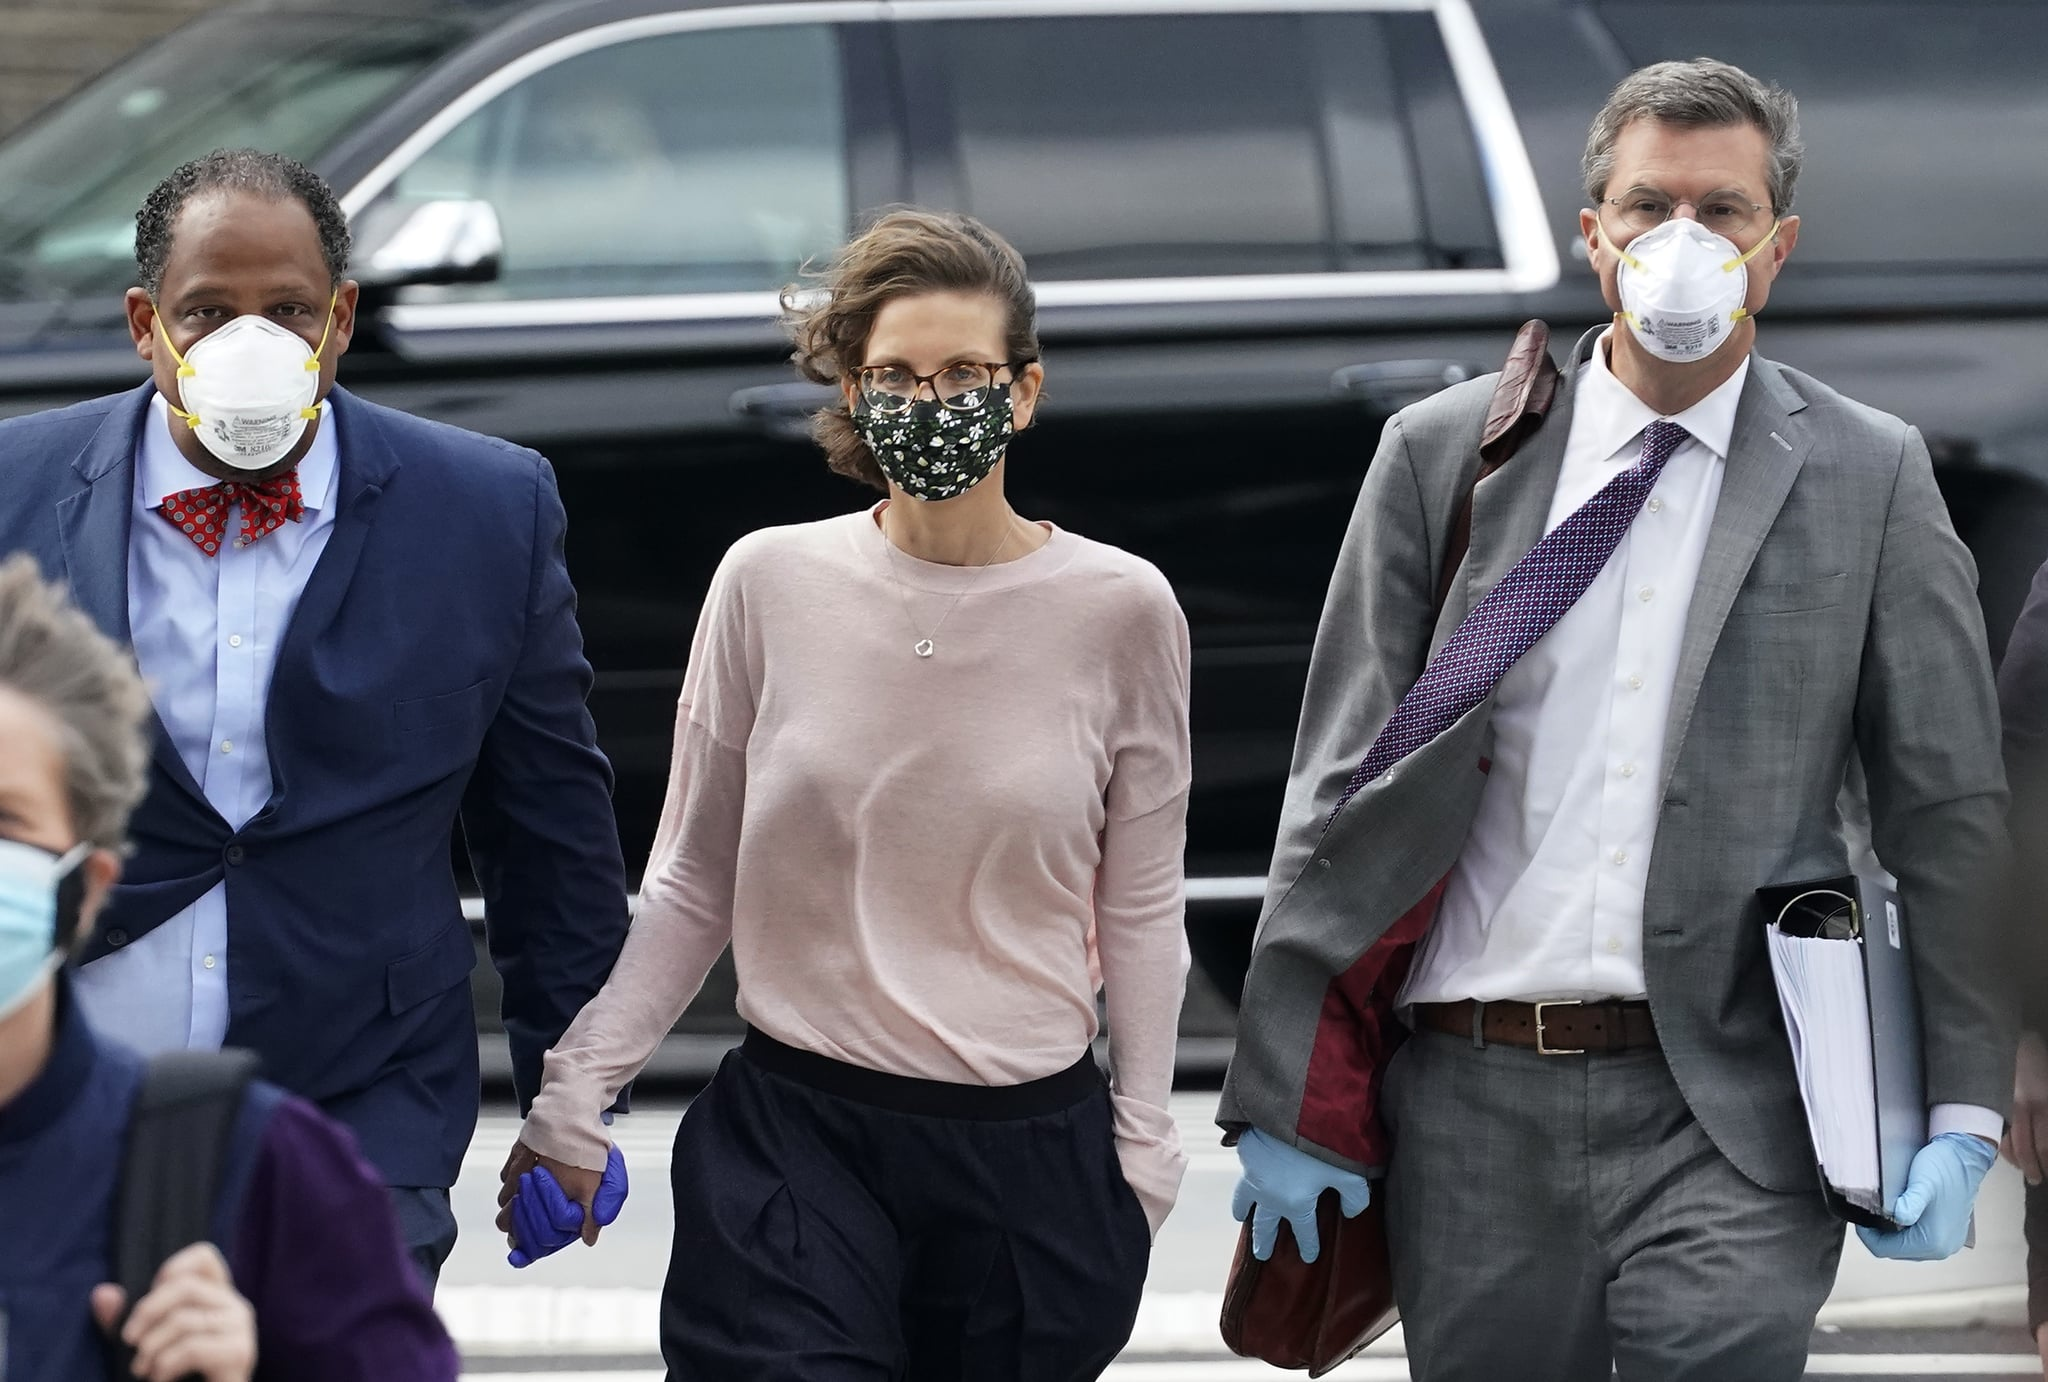 Clare Bronfman arrives at US District court in Brooklyn, New York on September 30, 2020 to be sentenced  for her role in NXIVM, a group that prosecutors say operated as a pyramid scheme and sex-trafficking cult. - US prosecutors on Agust 28, 2020 requested life in prison for a